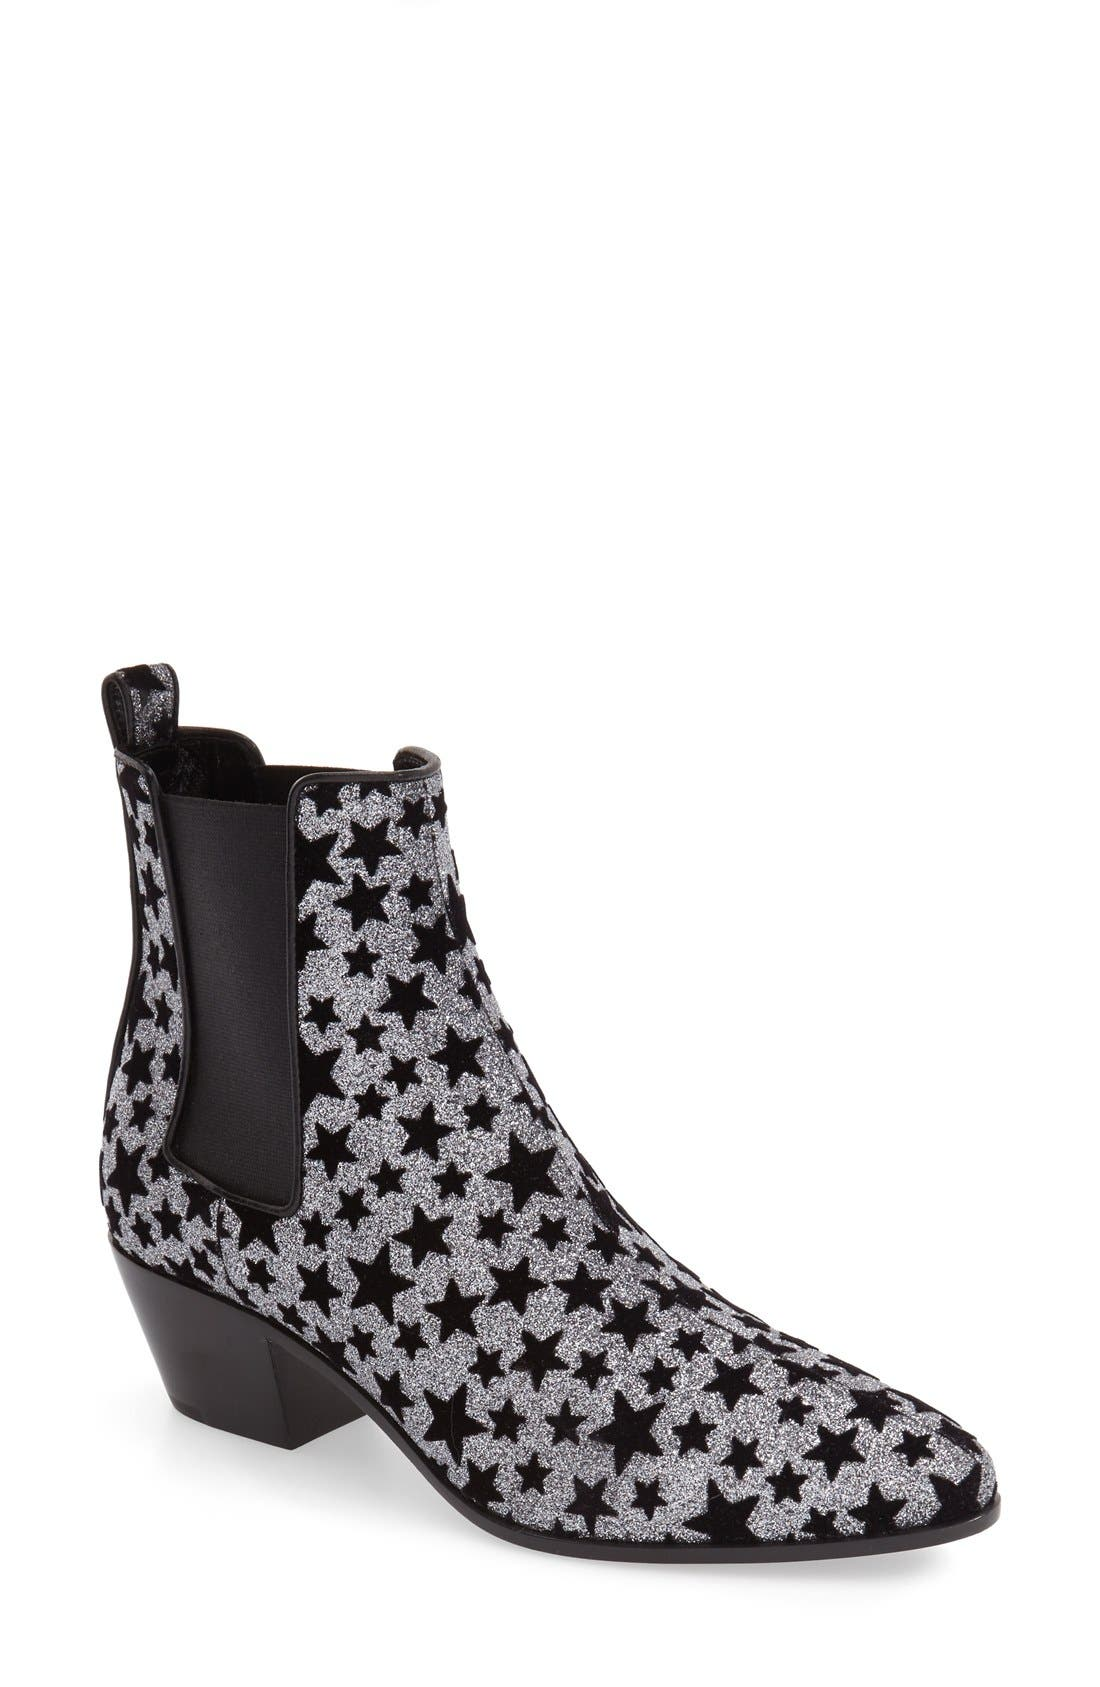 Alternate Image 1 Selected - Saint Laurent 'Rock Star' Bootie (Women)